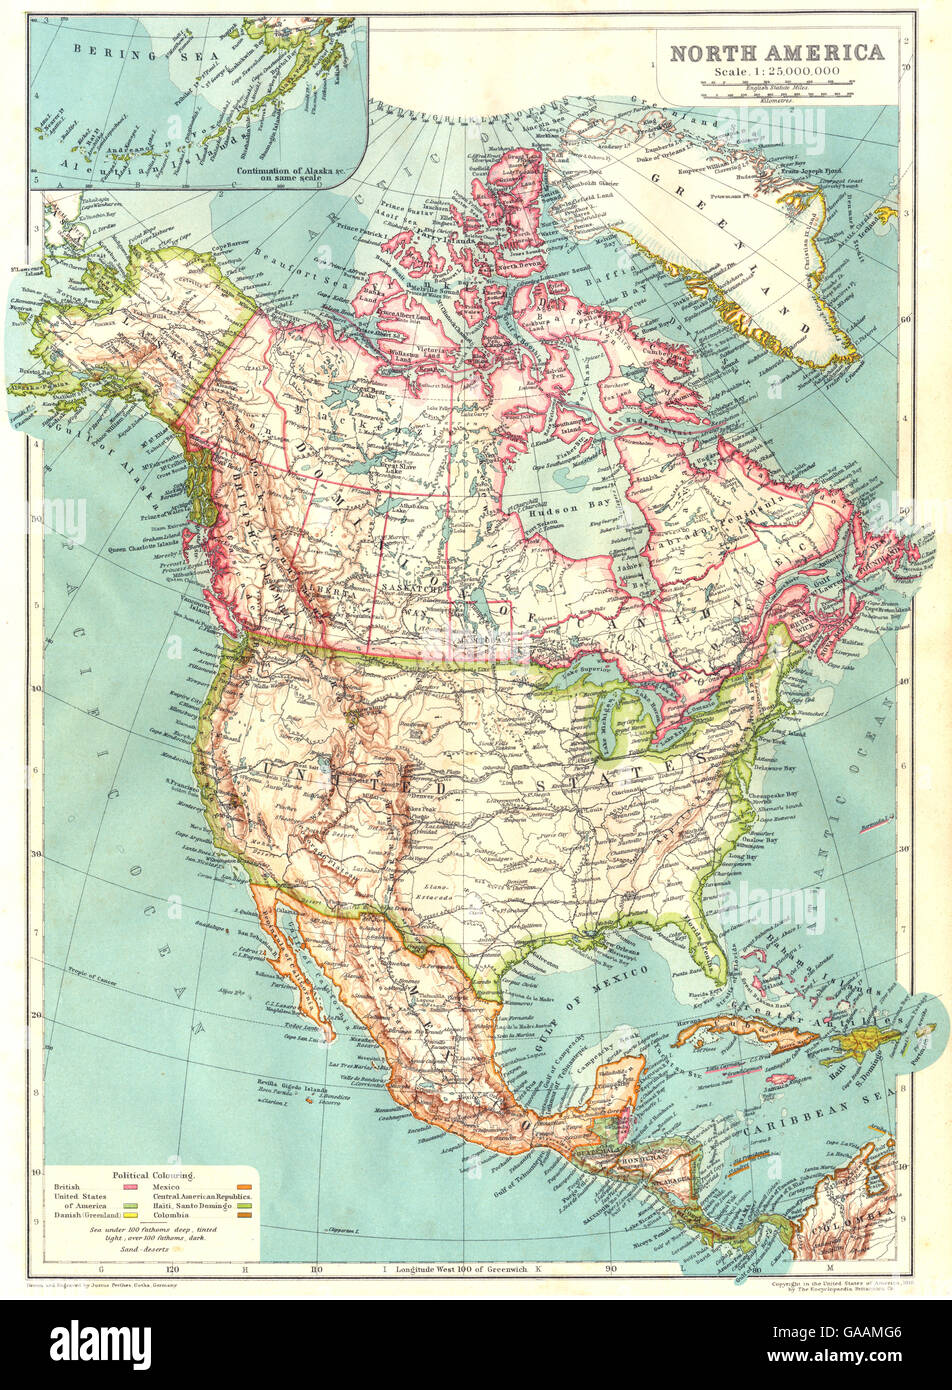 NORTH AMERICA: USA Mexico Canada West Indies Central America, 1910 ...